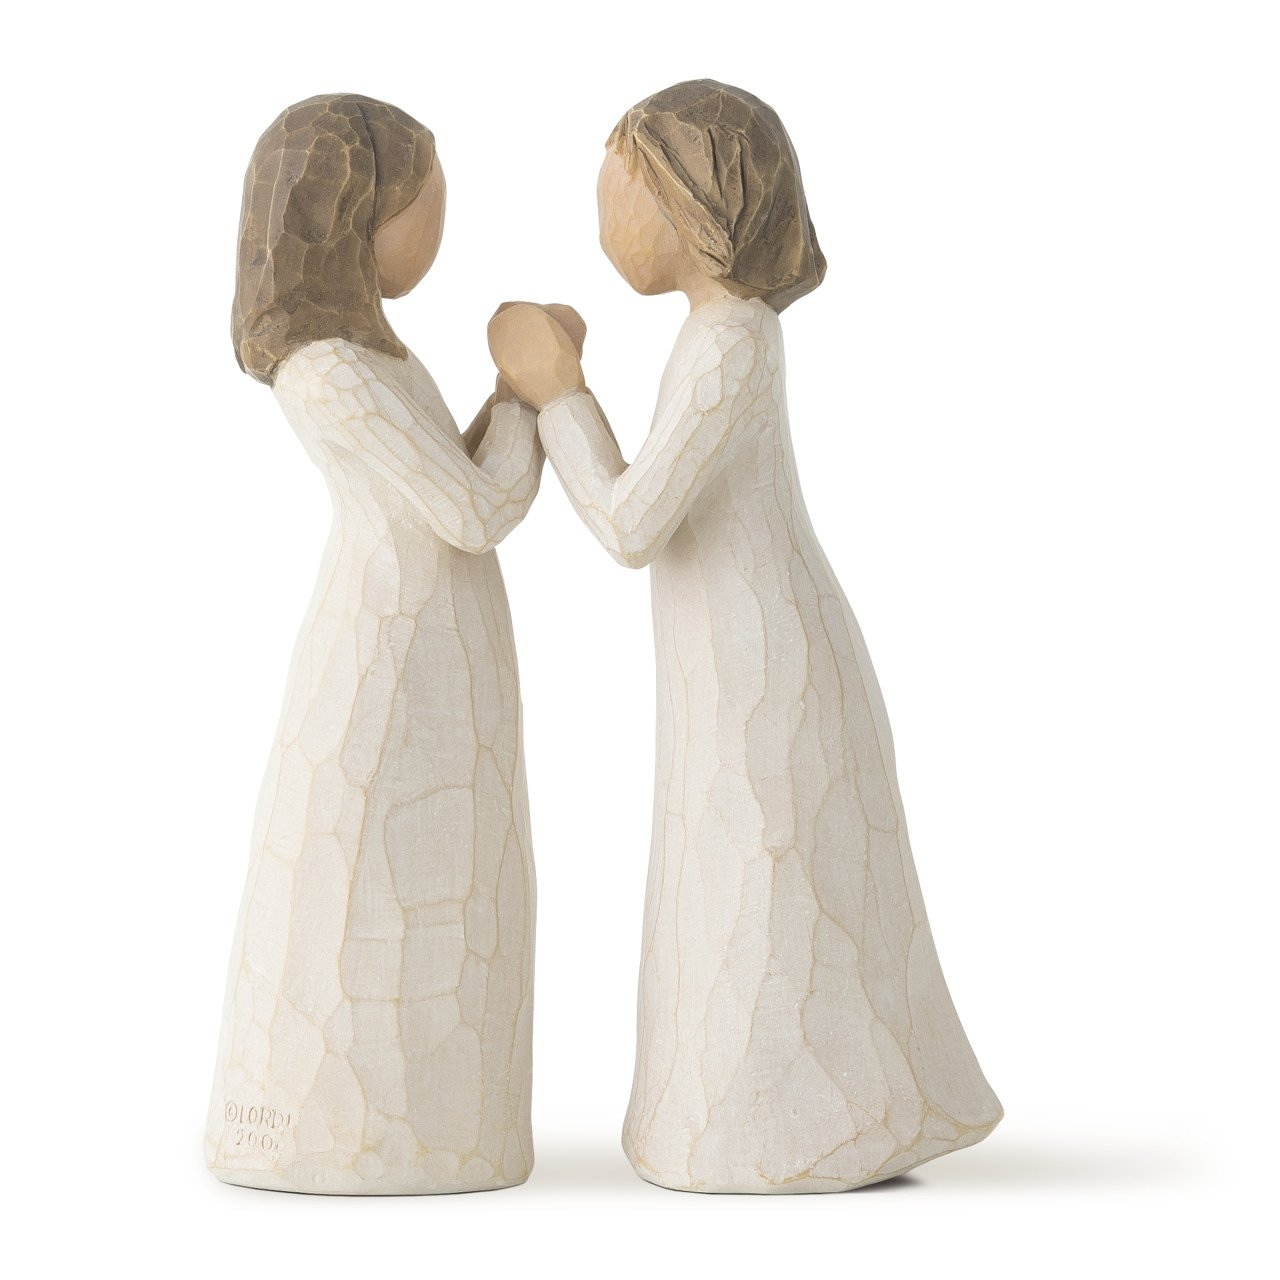 Willow Tree hand-painted sculpted figure, Sisters Heart, 2-piece set (26023)